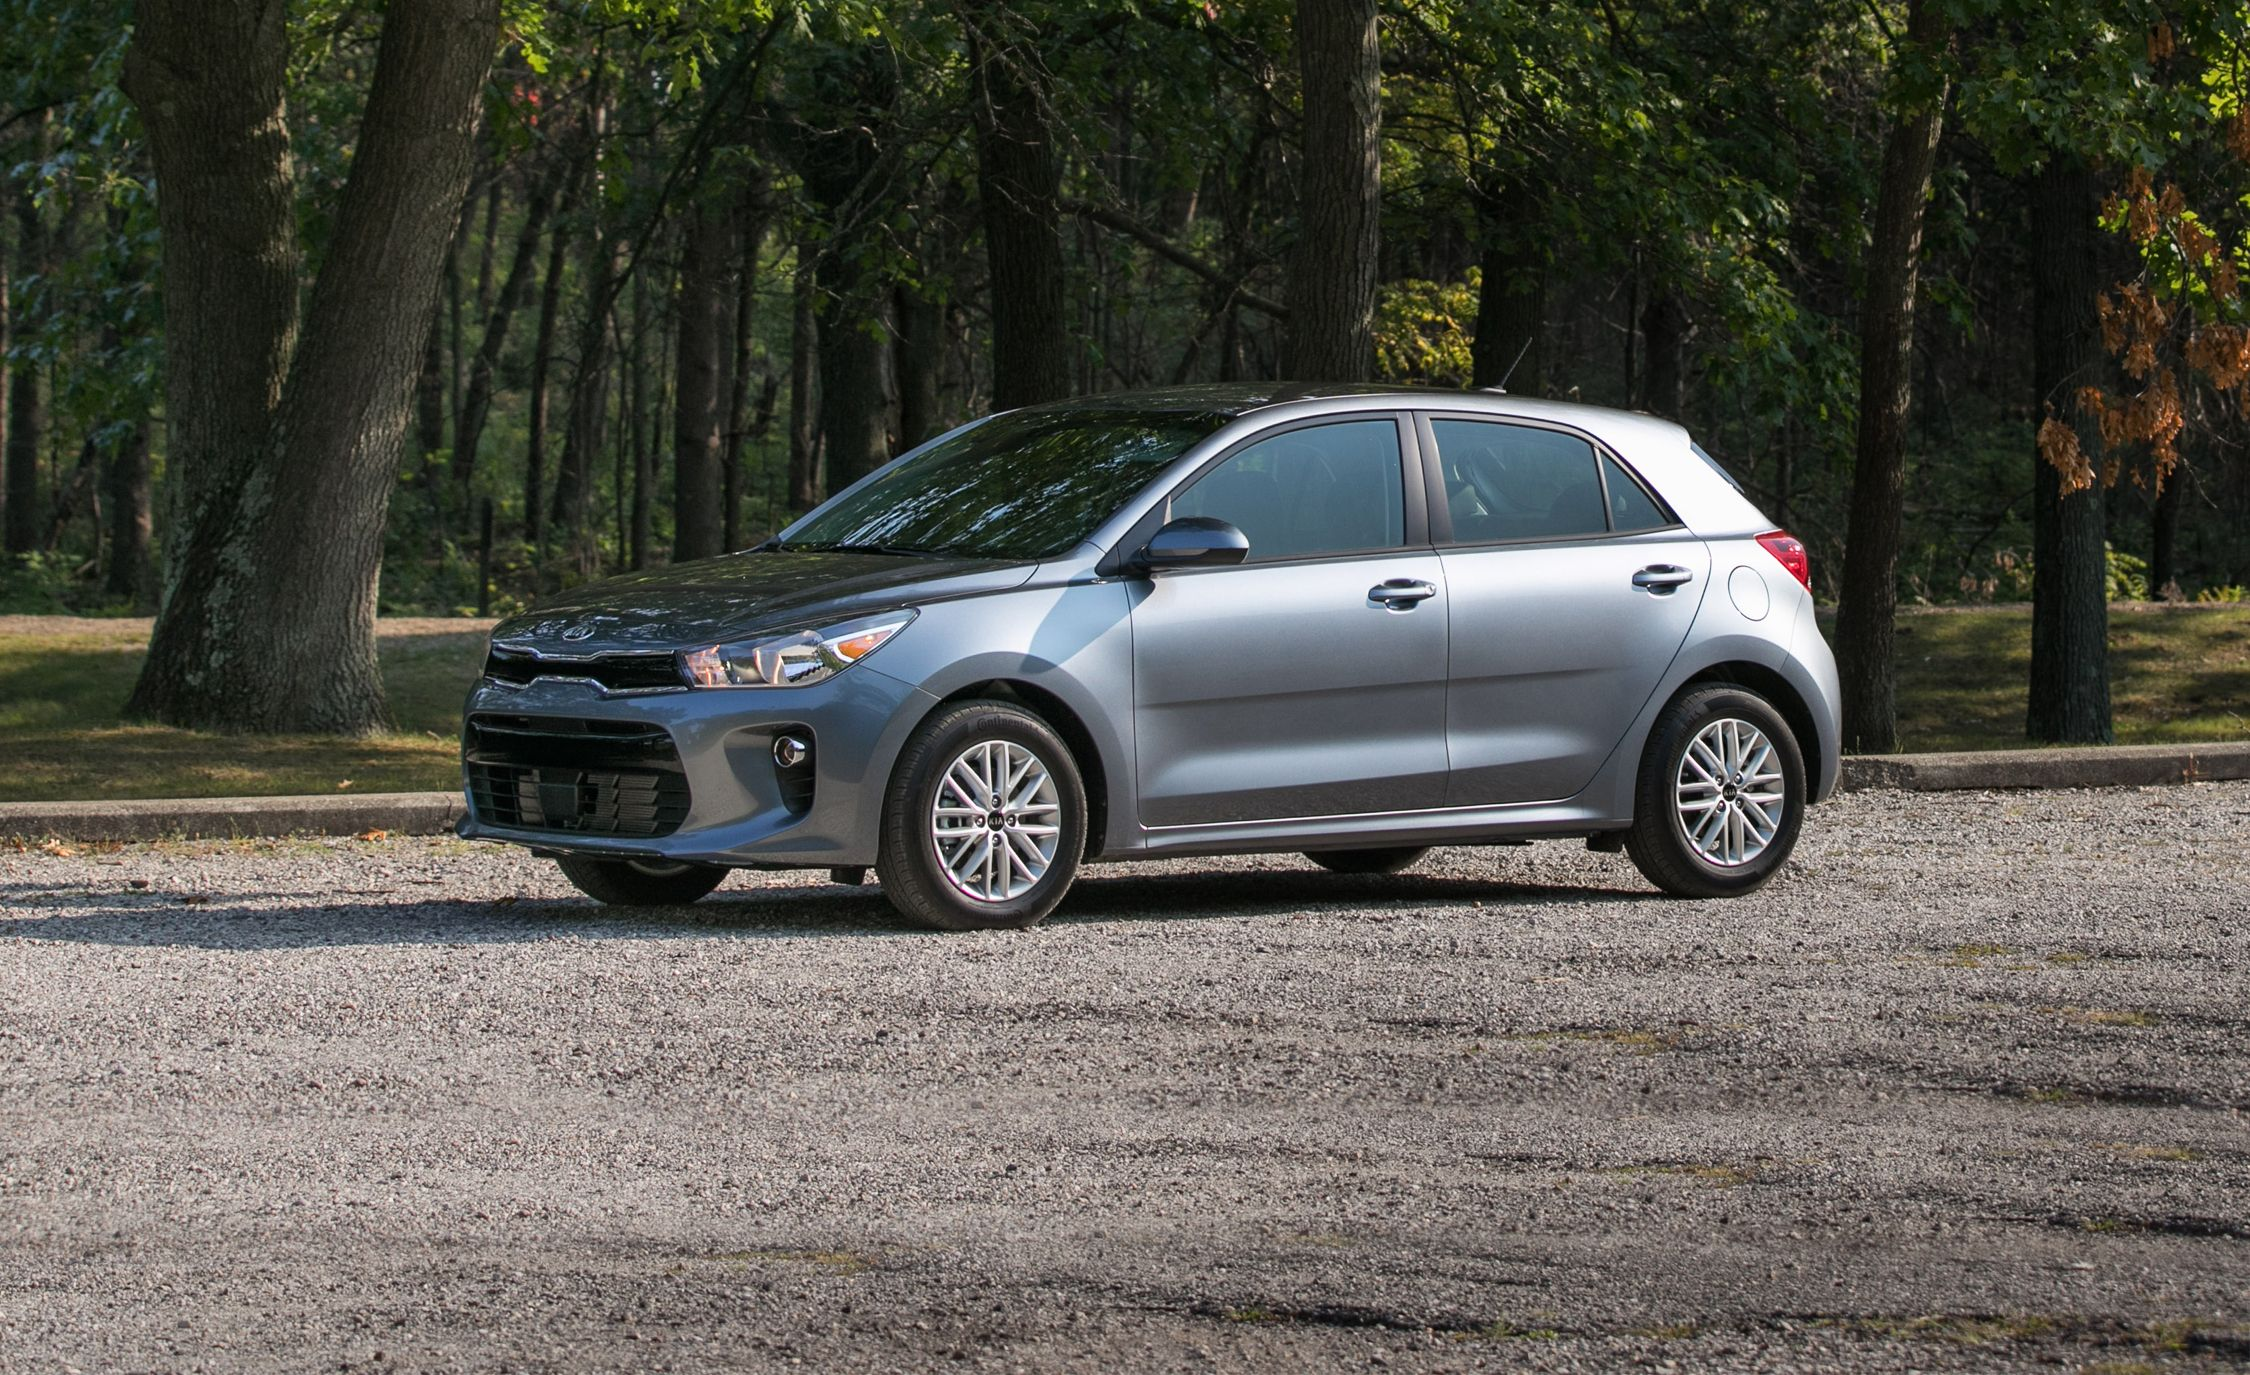 2018 Kia Rio Hatchback Automatic Test Review Car And Driver